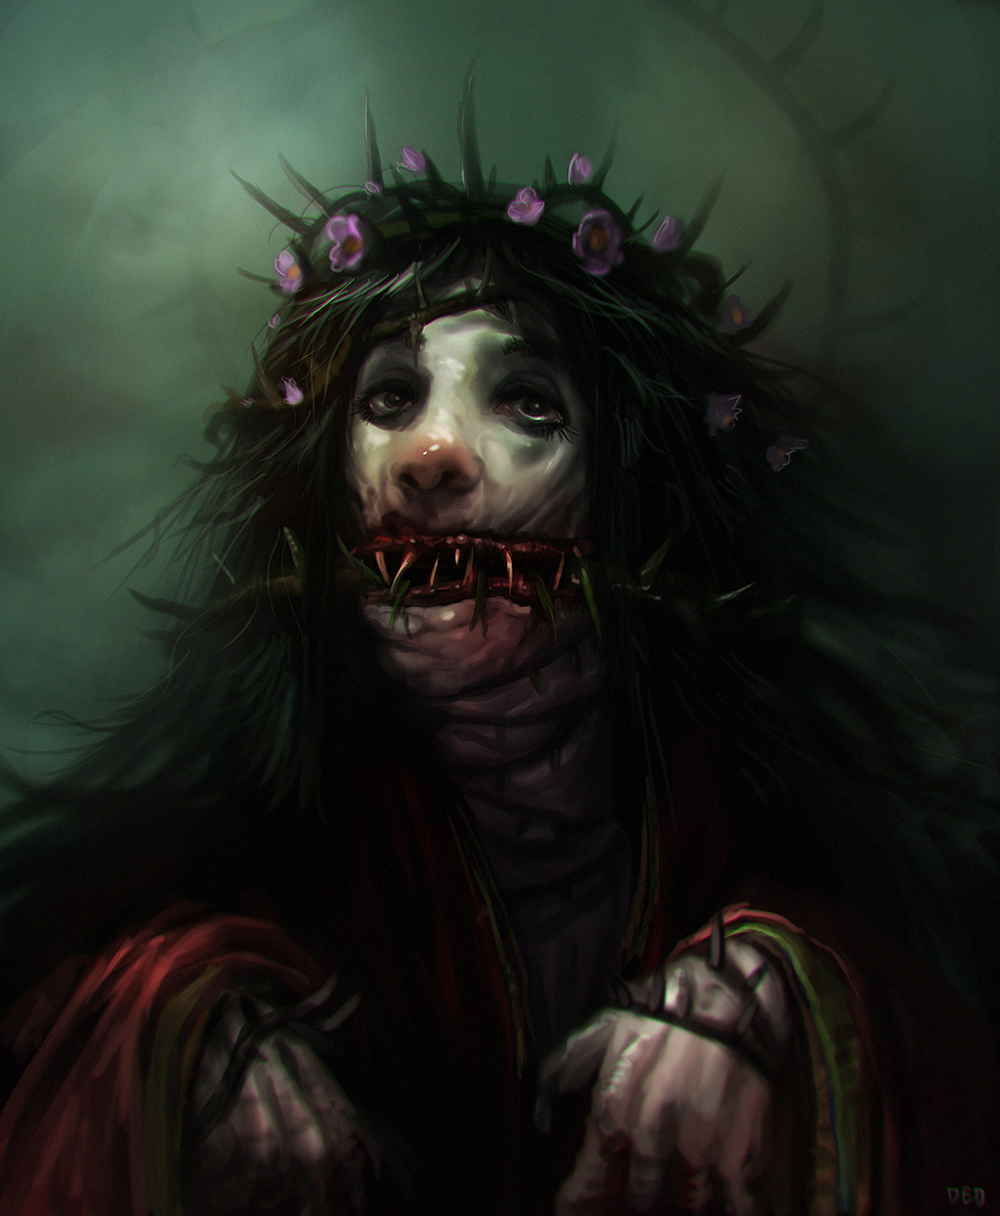 lady of thorns by unded